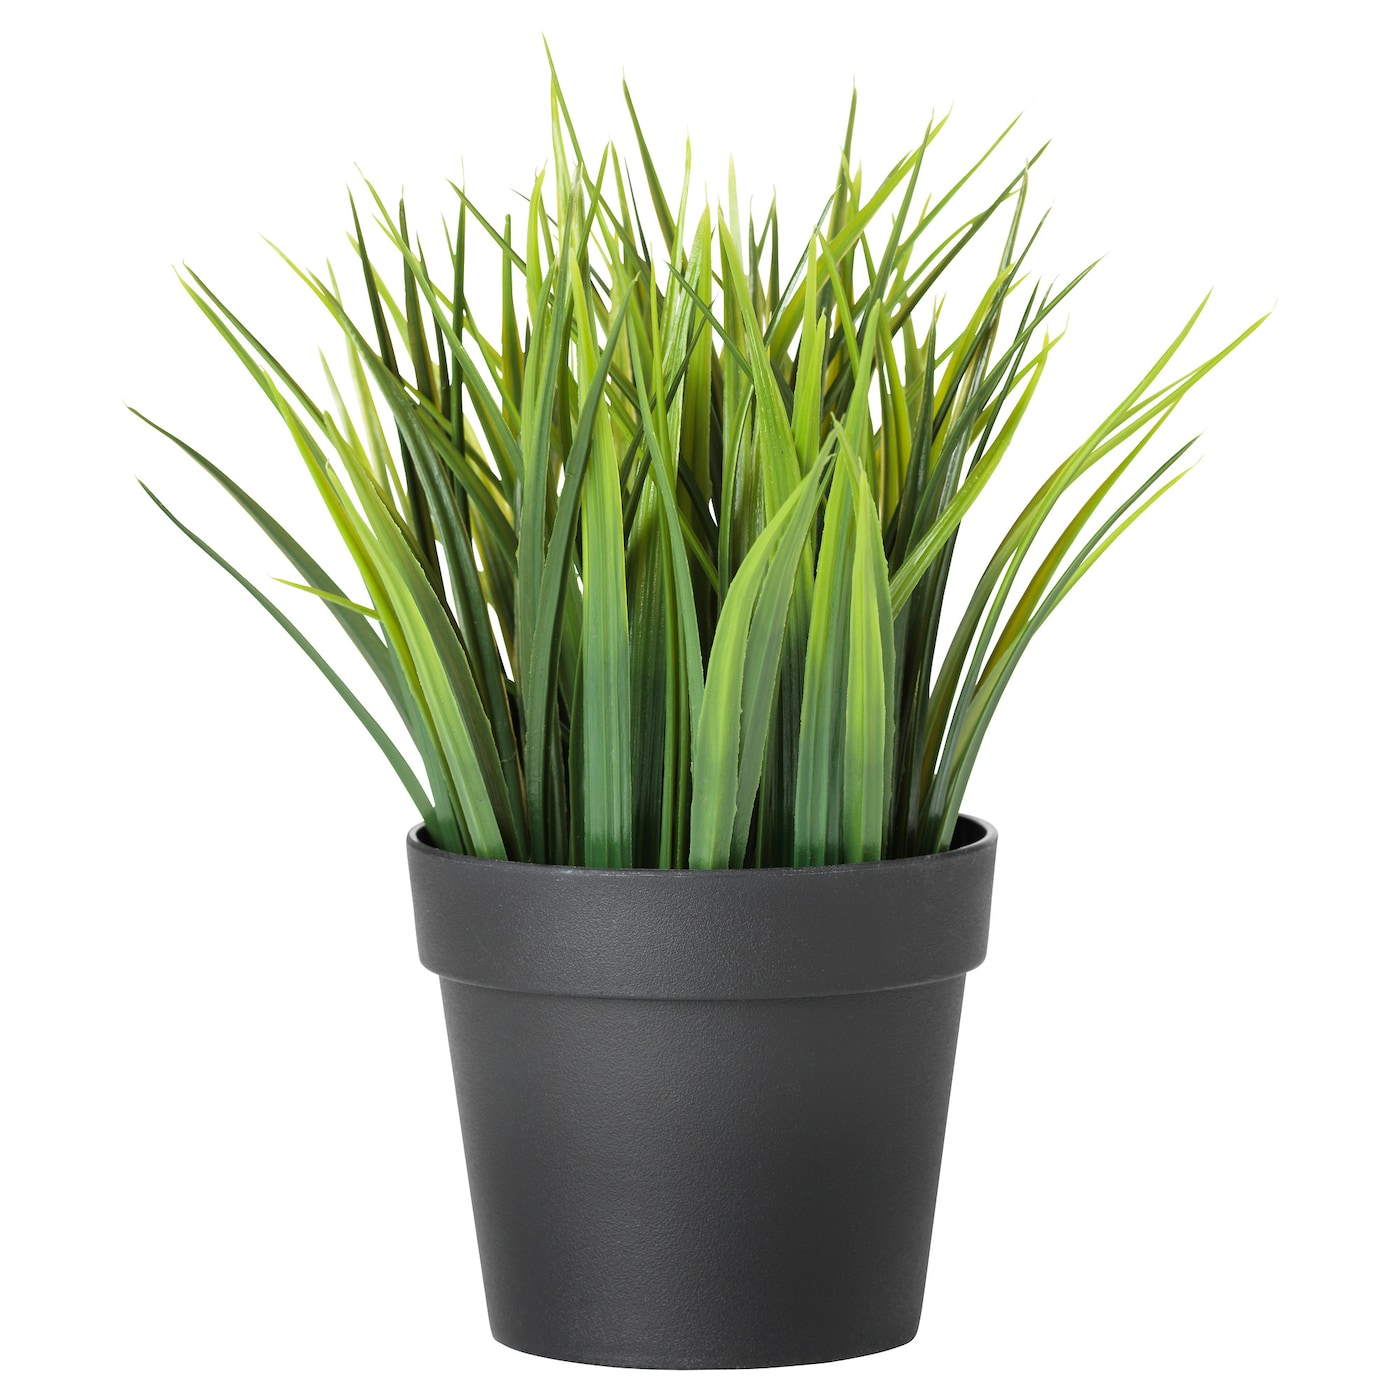 Fejka artificial potted plant grass 10 5 cm ikea for Ikea plantes